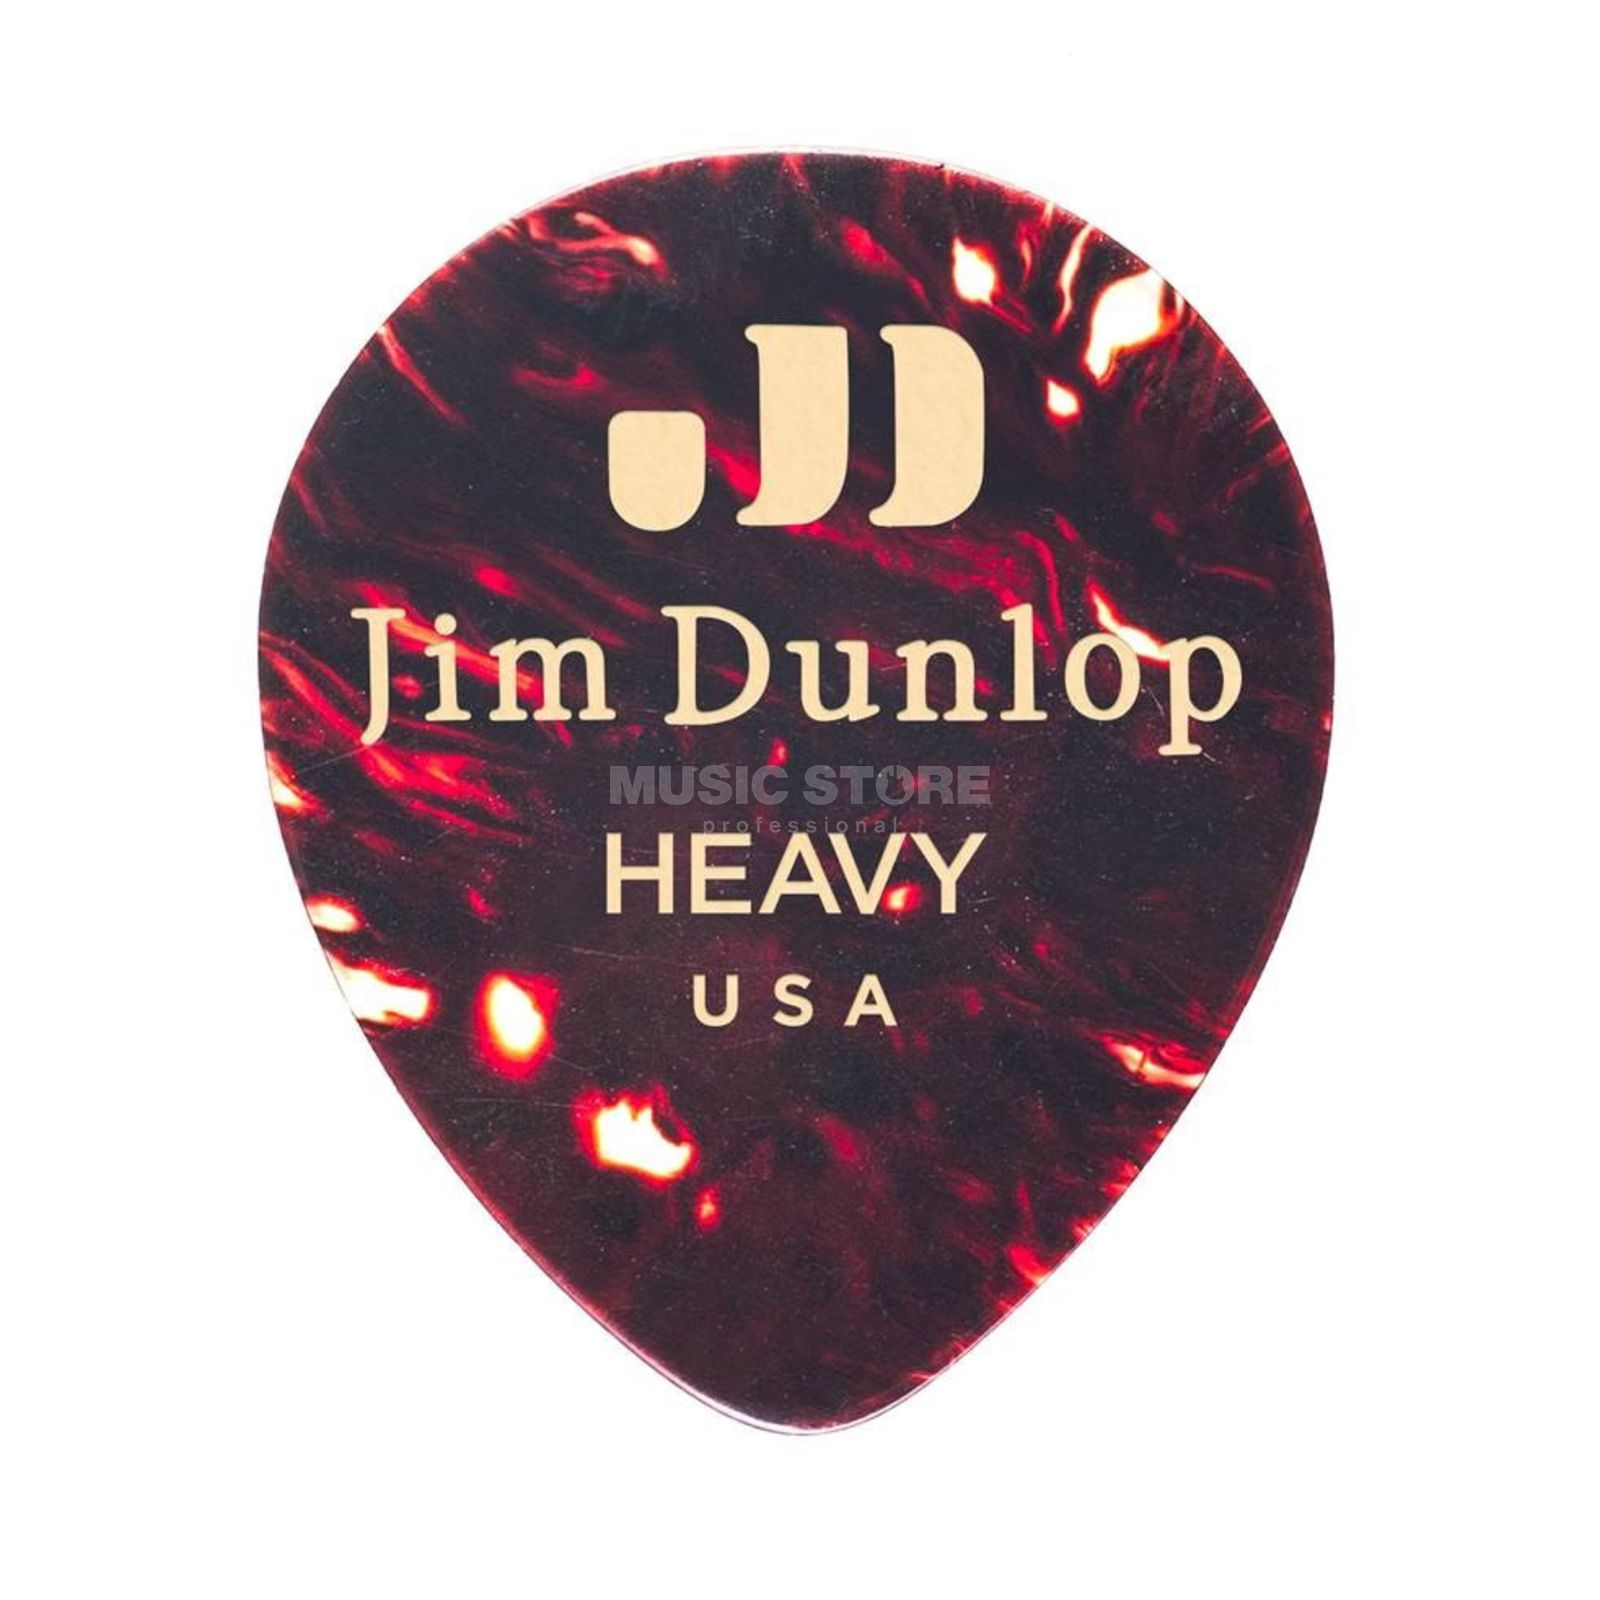 Dunlop Teardrop 485 Picks Product Image